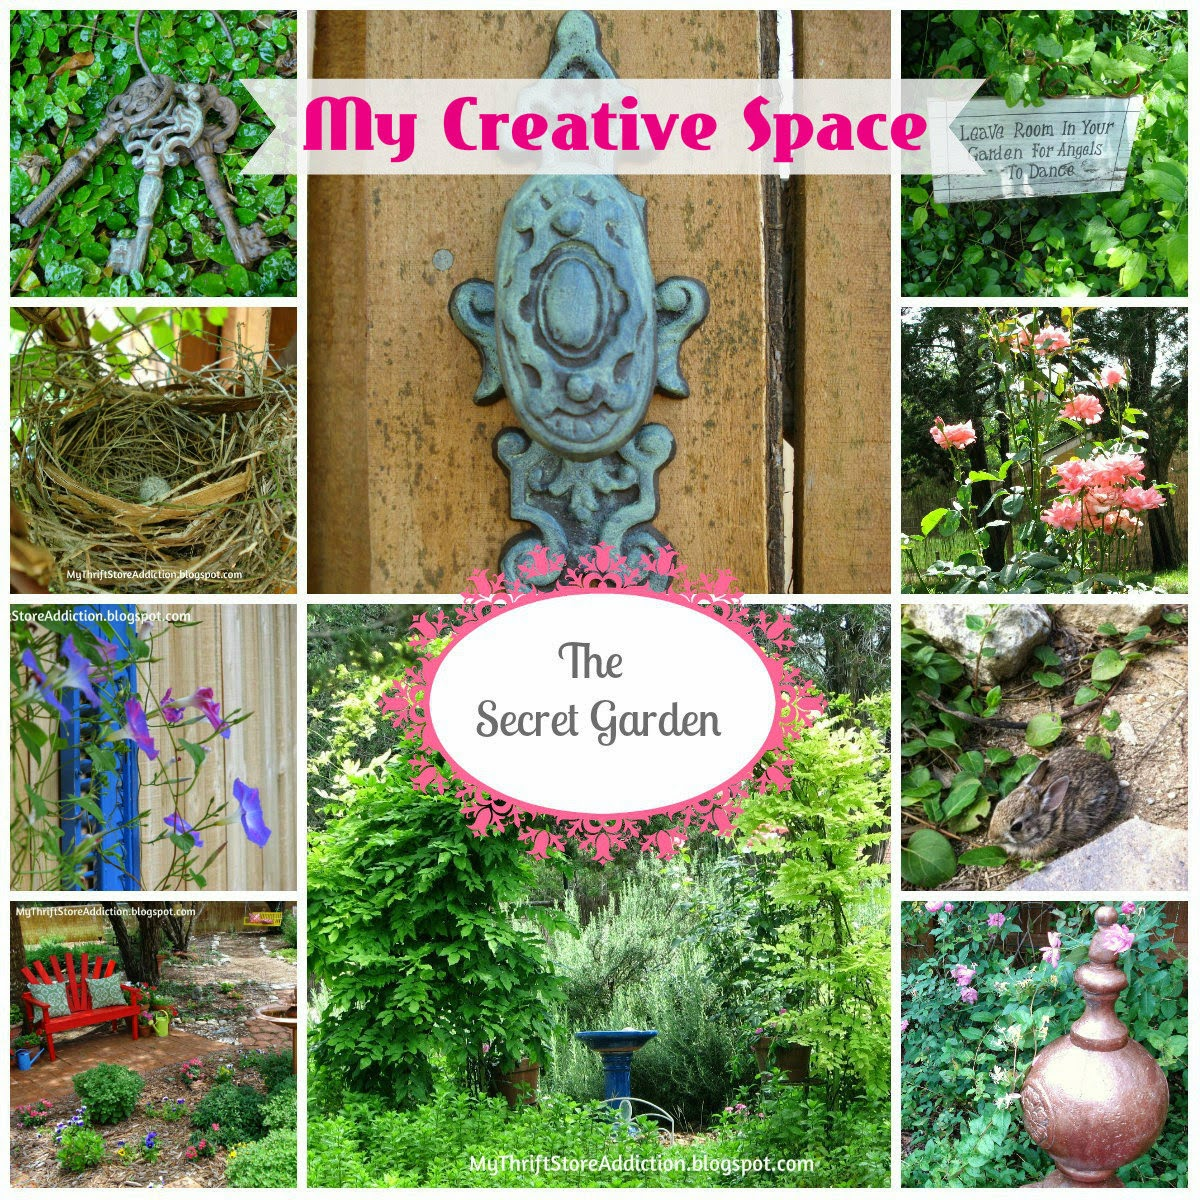 Welcome to Secret Garden: My Creative Space! mythriftstoreaddiction.blogspot.com My whimscial repurposed creative space and home of Secret Garden Herbs